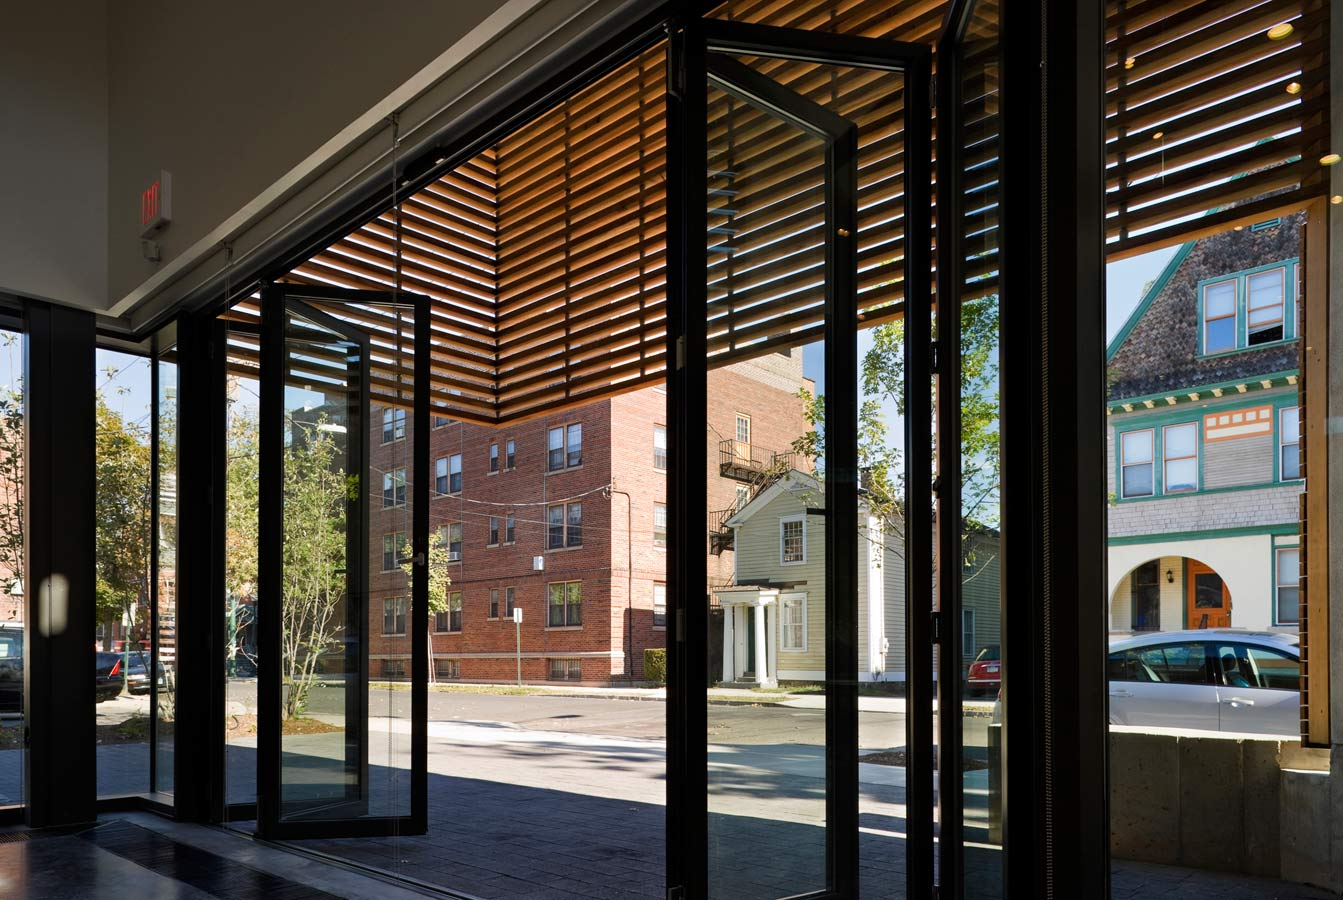 <p>The doors of the art gallery fold back accordion-style to create a porch along the street front in nice weather, inviting visitors inside.  <br><small>© Peter Aaron/OTTO</small></p>